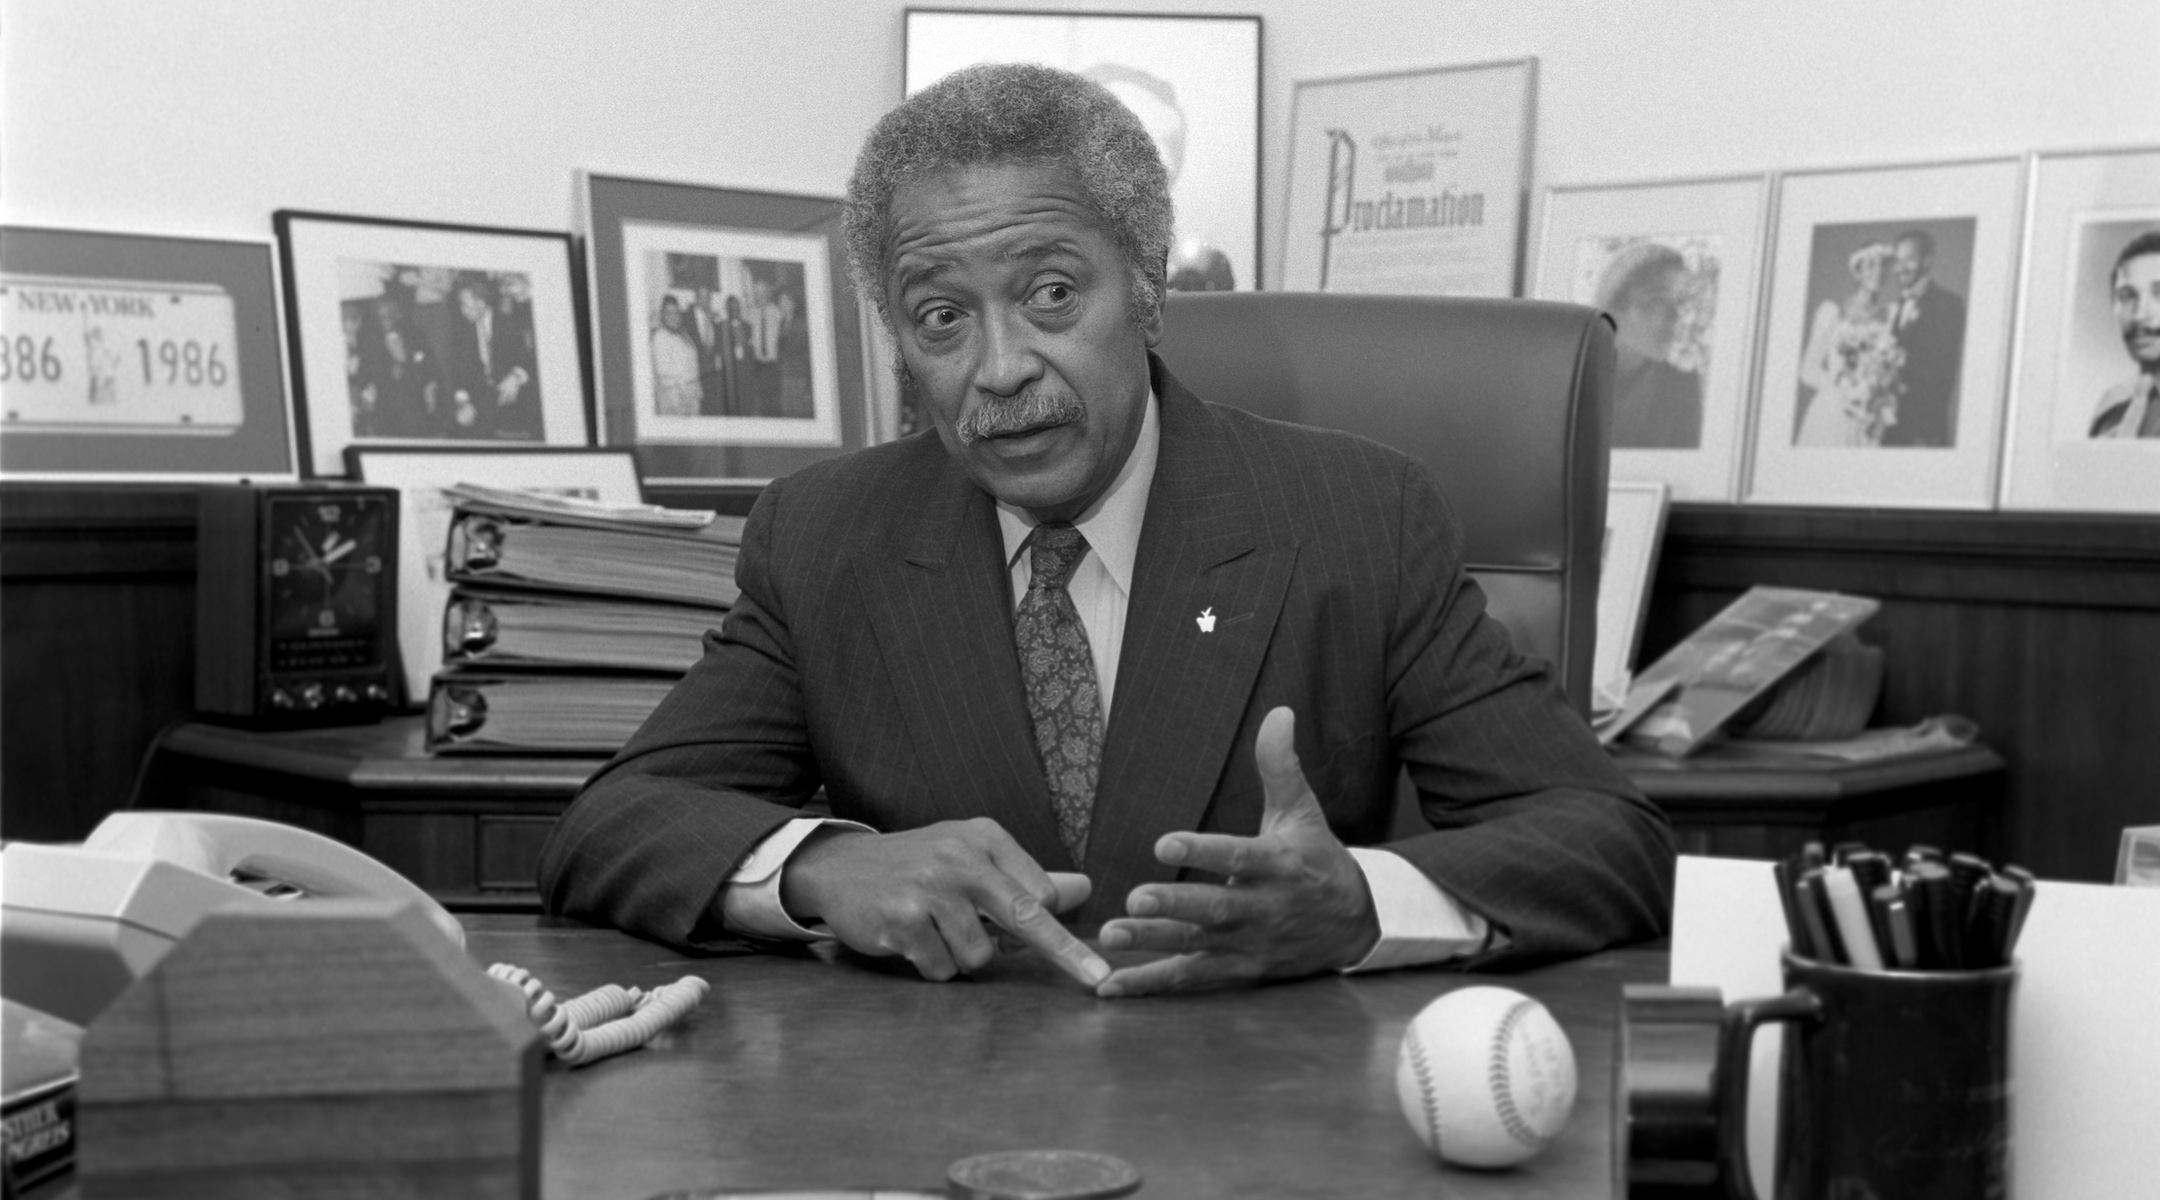 David Dinkins, NYC's first Black mayor who was embattled by Crown Heights riots, dies at...